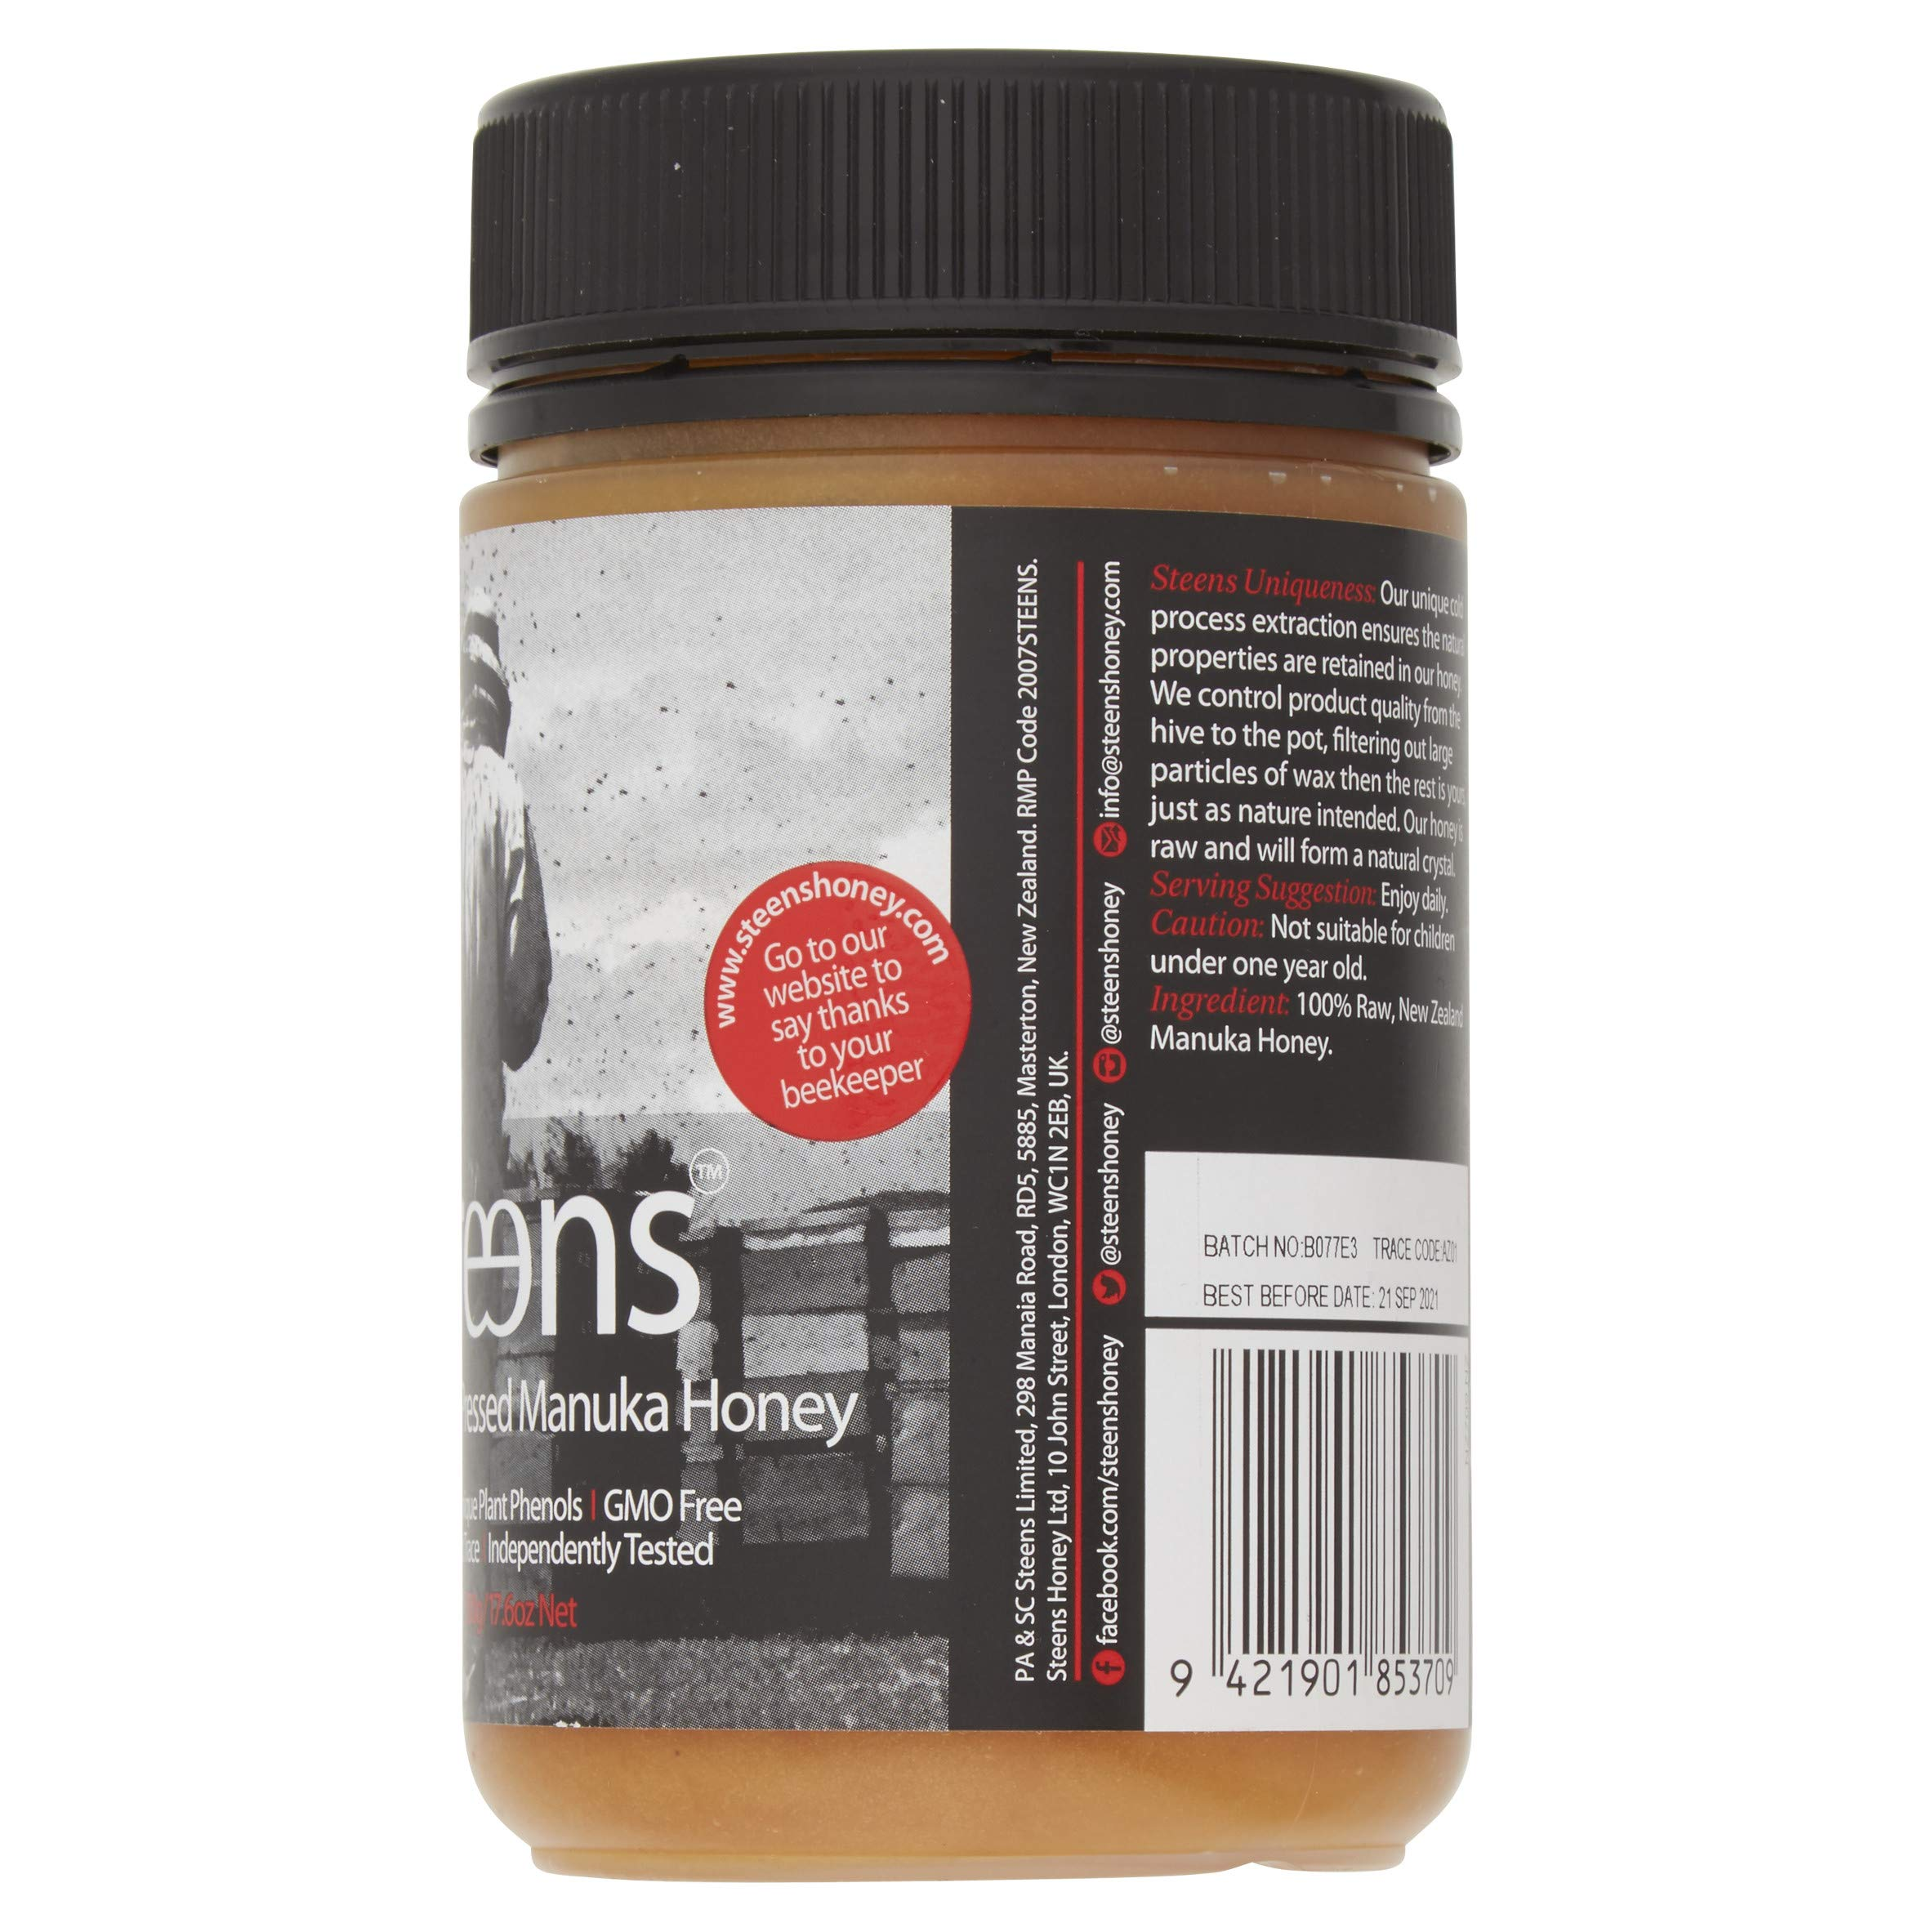 Steens Manuka Honey UMF 15 (MGO 514) 17.6 Ounce jar   Pure Raw Unpasteurized Honey From New Zealand NZ   Traceability Code on Each Label by Steens (Image #4)